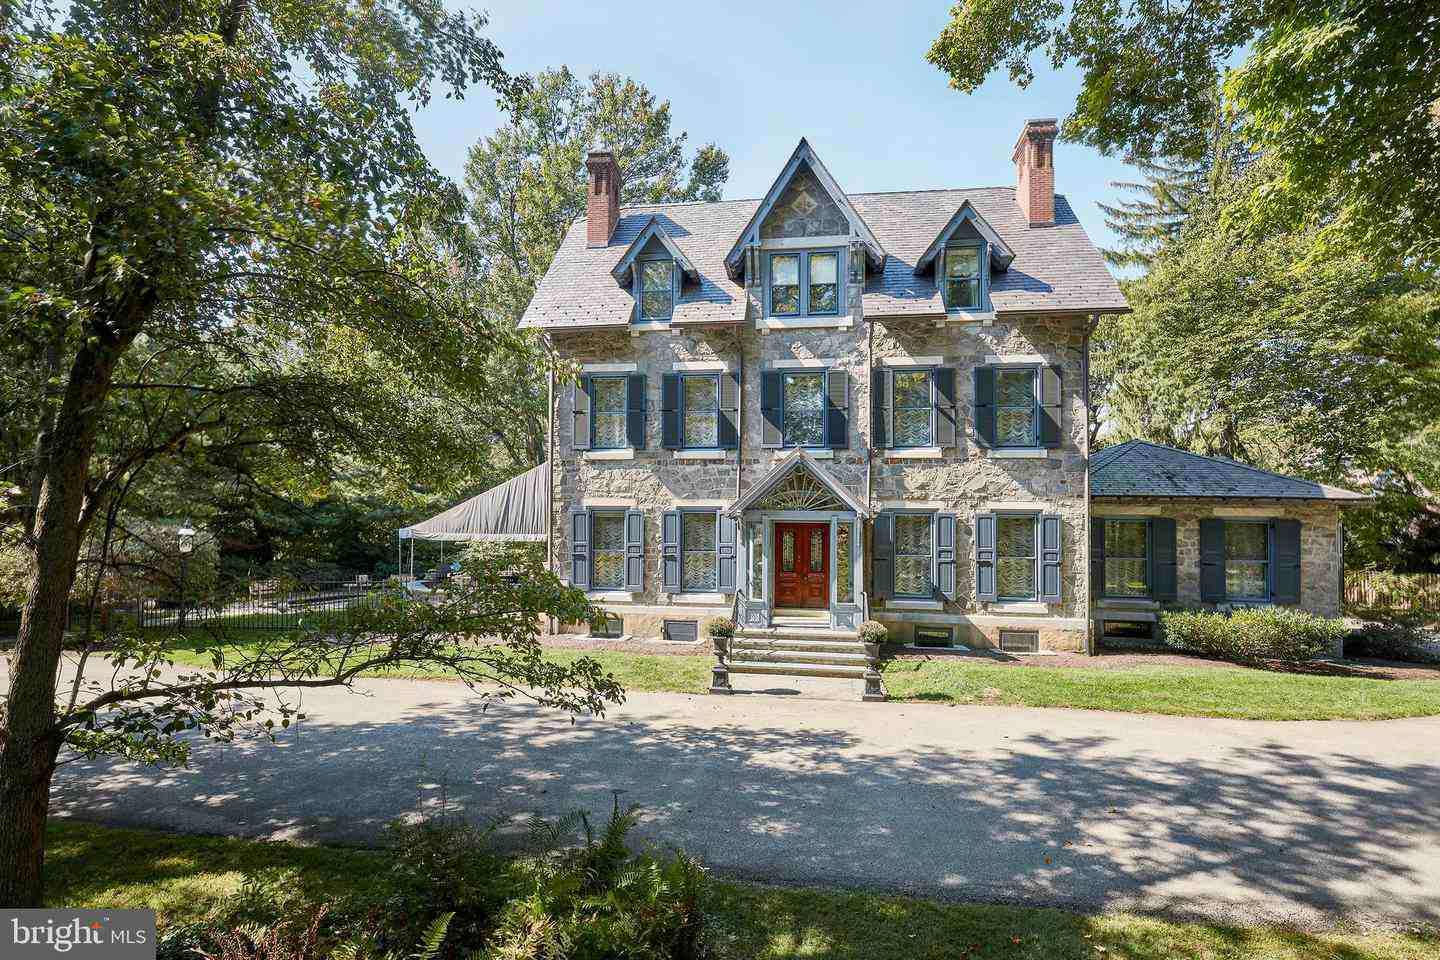 Malvern Bank House of the Week: 1880 stone Victorian Manor home in Villanova